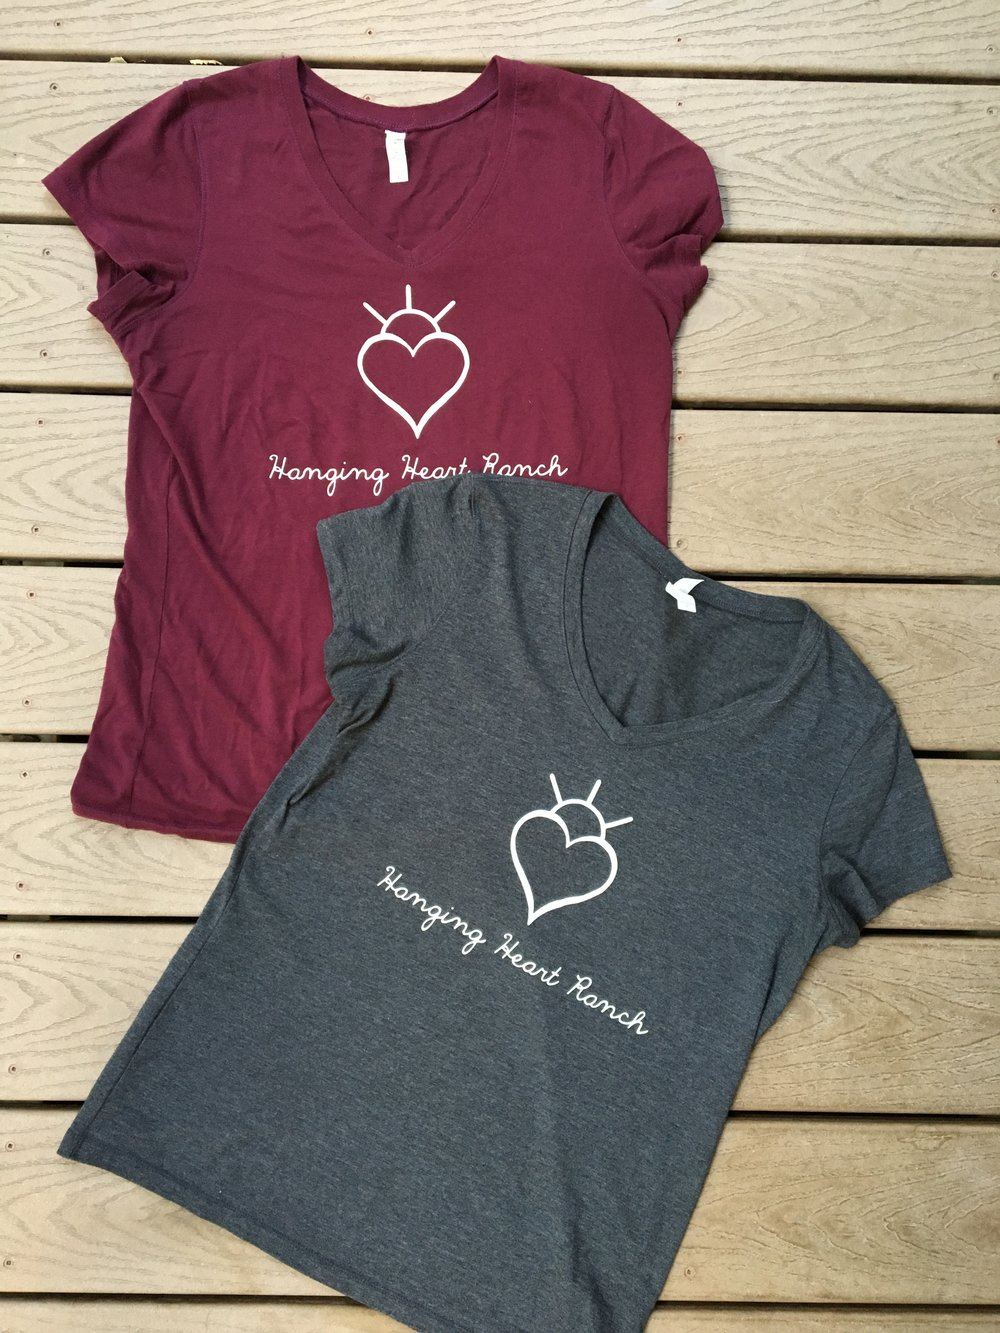 Adult V-Neck T-Shirts $25   Colors: Light Grey, Dark Grey, Light Blue, Green, Black, Brown, Maroon, Navy, Plum, Red